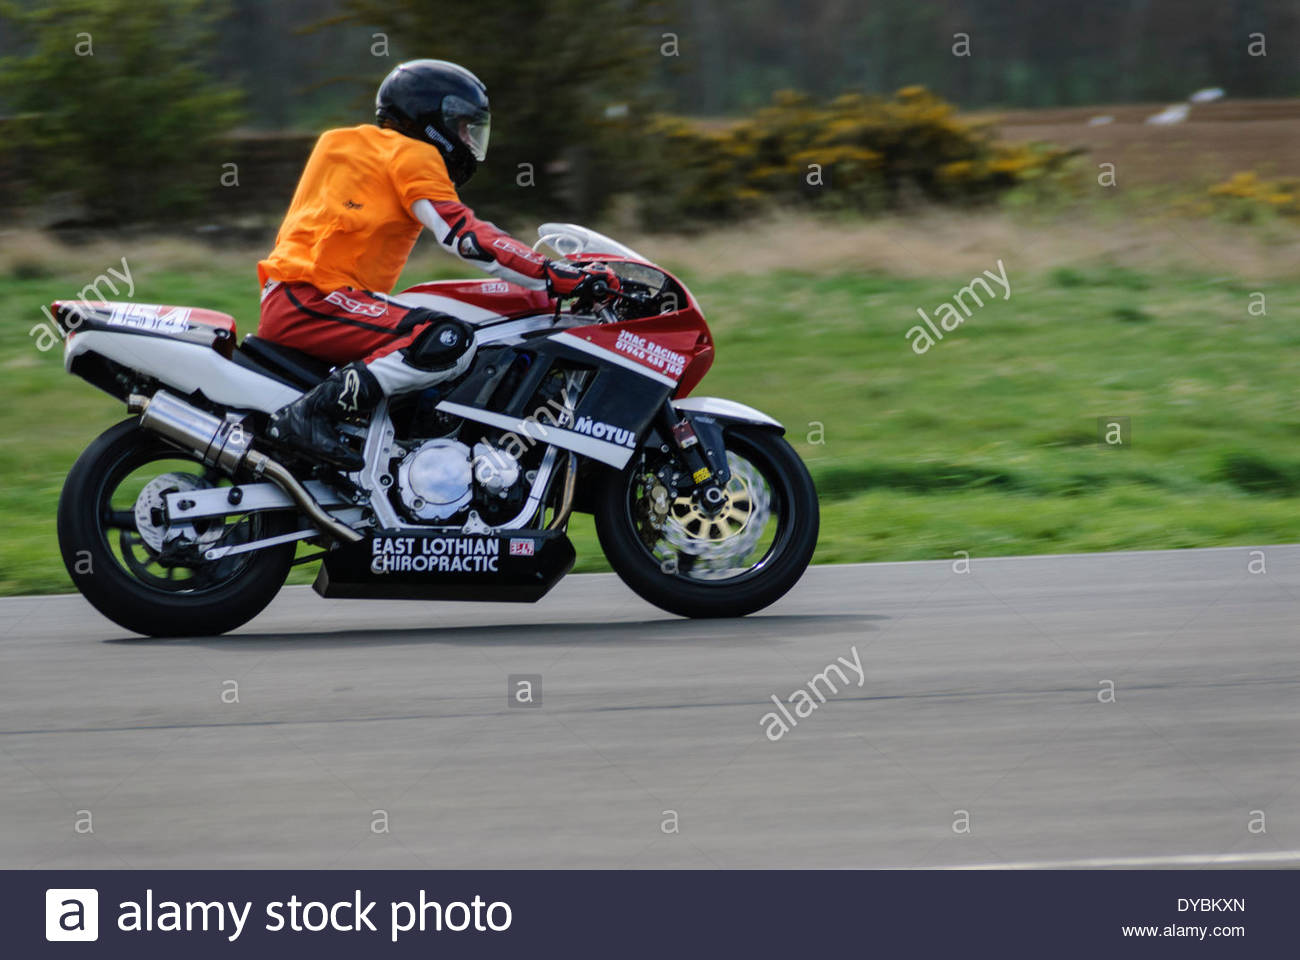 East Fortune, UK. 13th Apr 2014.  154 Ryan Johnstone on the J Mac Racing GSXR1100 during the Junior and Senior Post Classic race at East Fortune Raceway - Stock Image